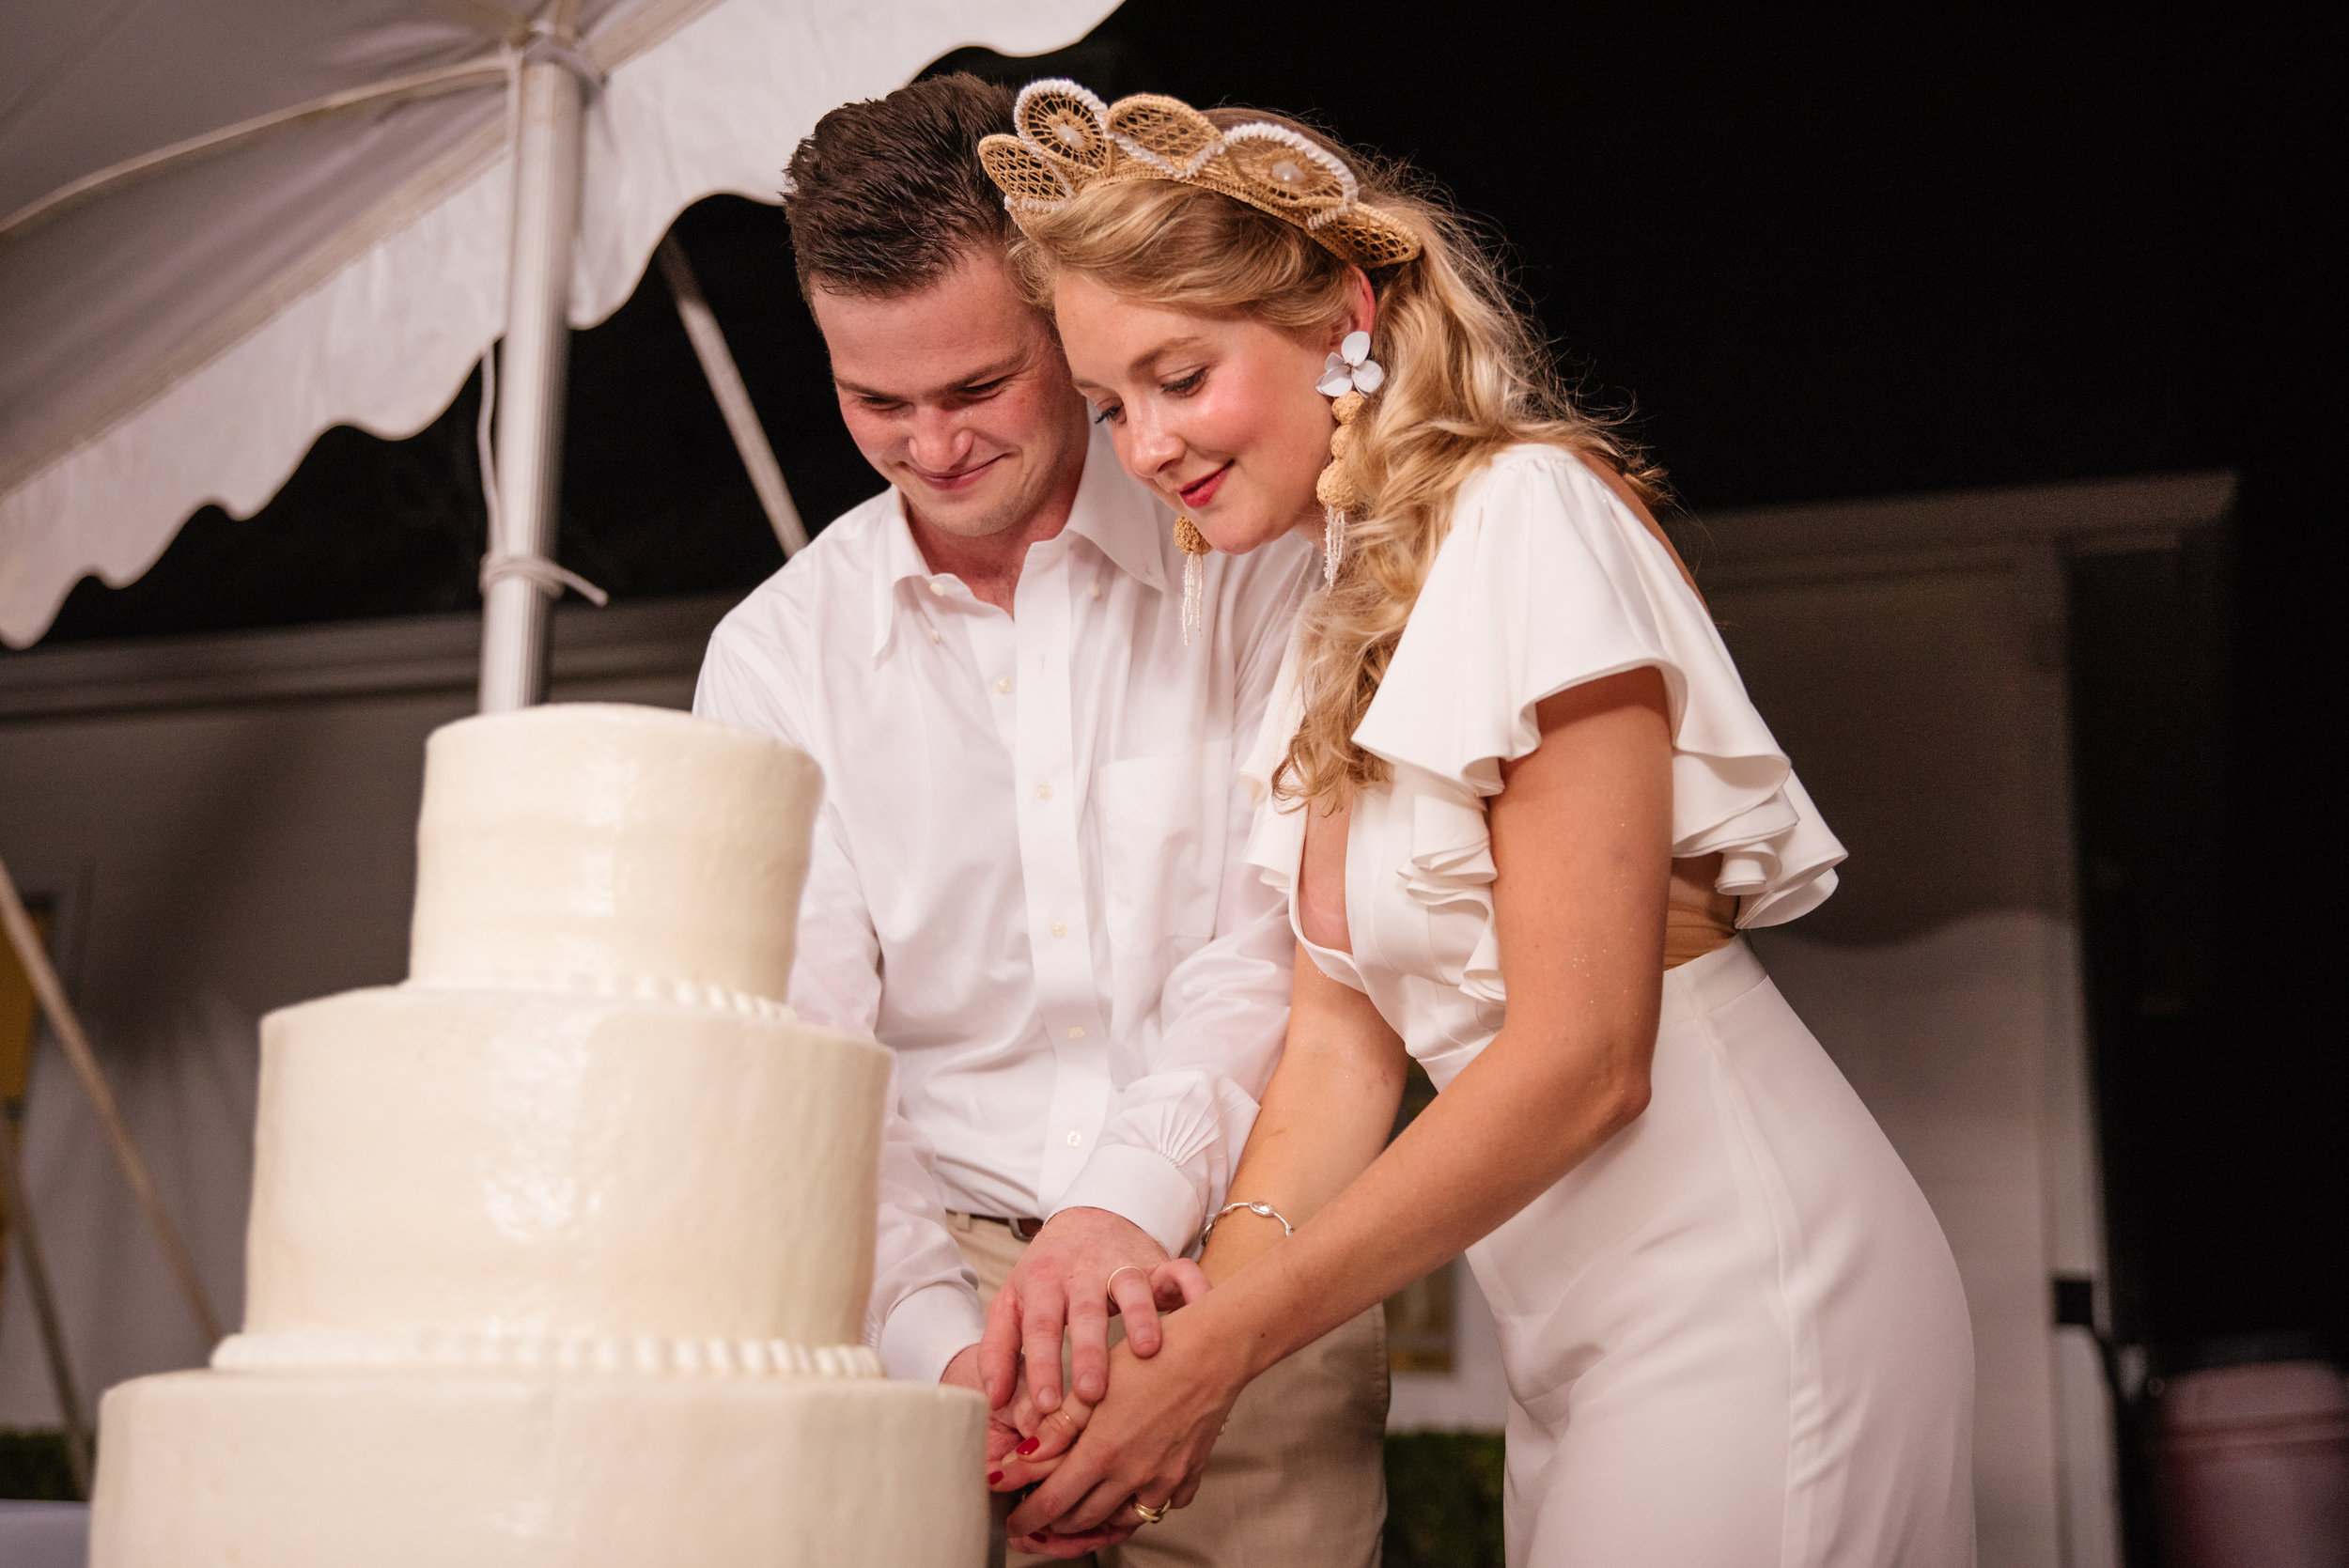 17-2019-TC-Wedding-web.jpg